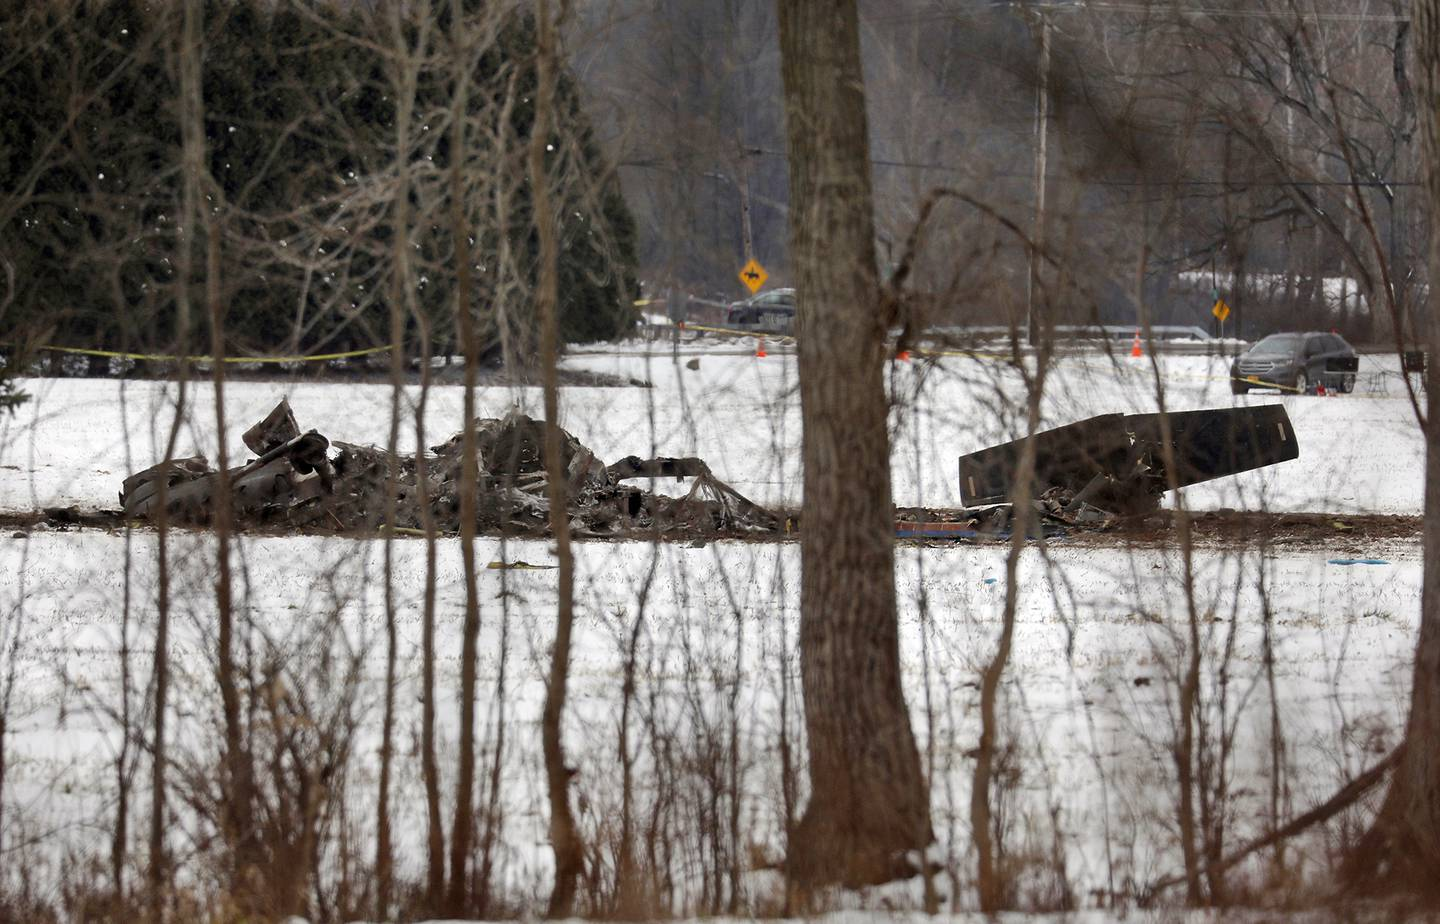 The wreckage of a UH-60 Black Hawk medical evacuation helicopter sits in a field in Mendon, NY., Thursday, Jan. 21, 2021.